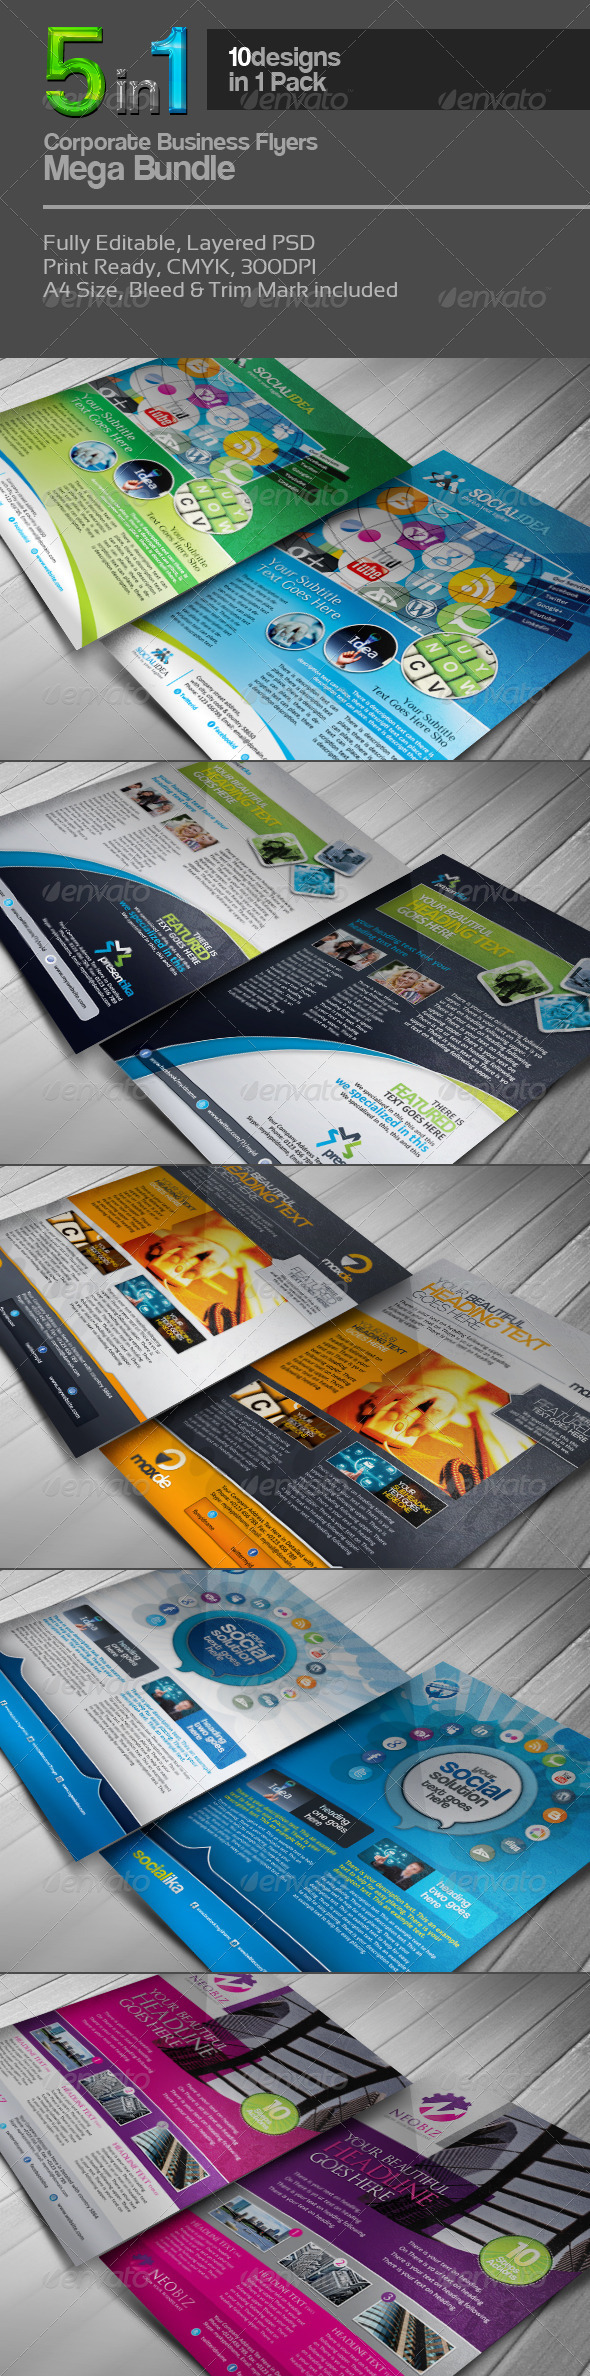 5 in 1 Corporate Flyers Mega Bundle - Corporate Flyers